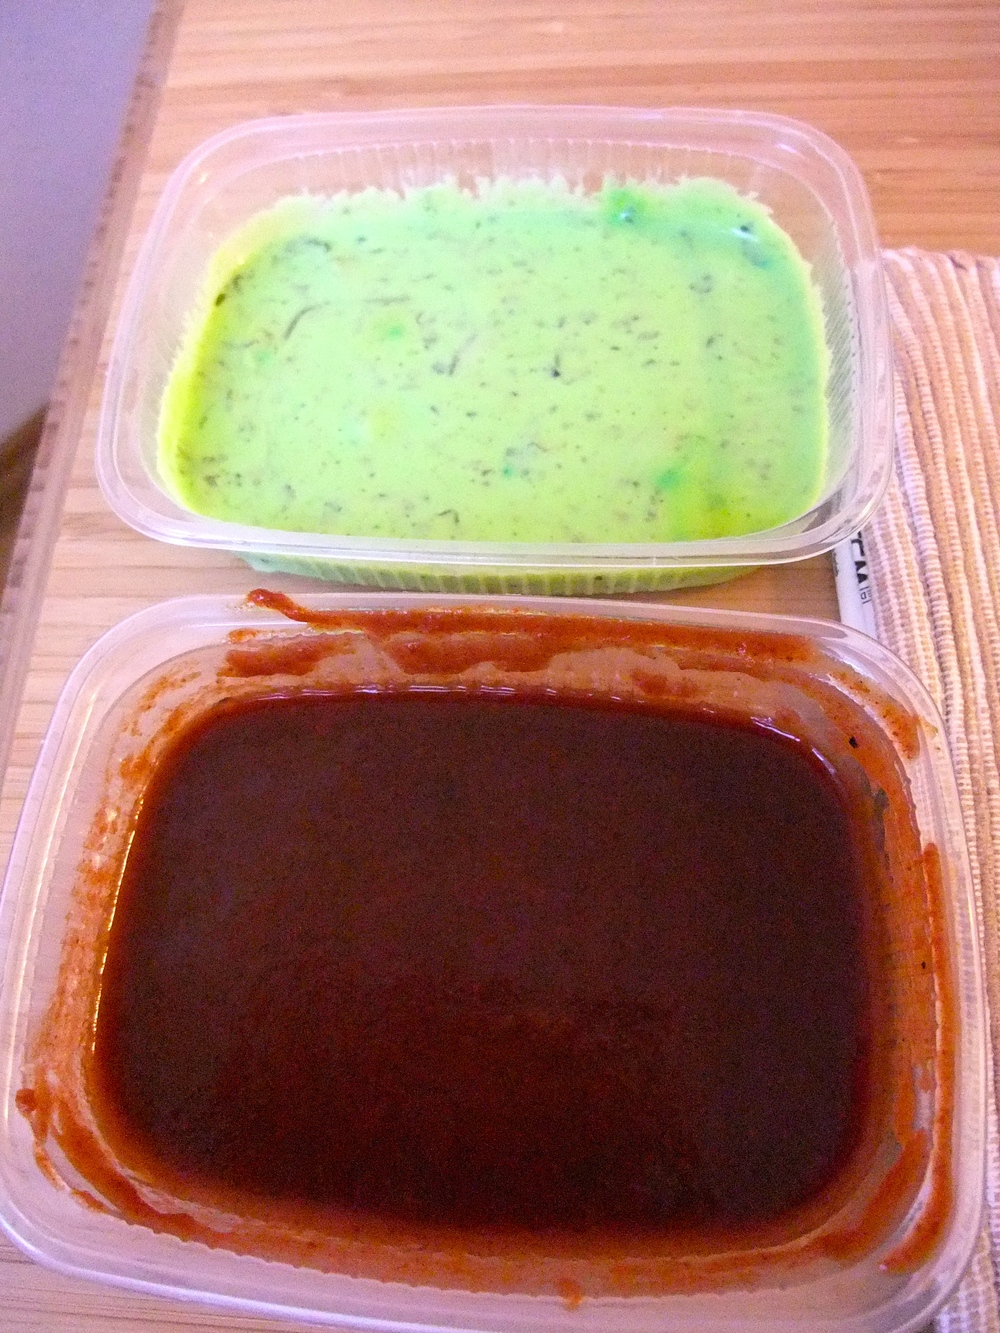 Mint-yogurt and tamarind sauces for dipping